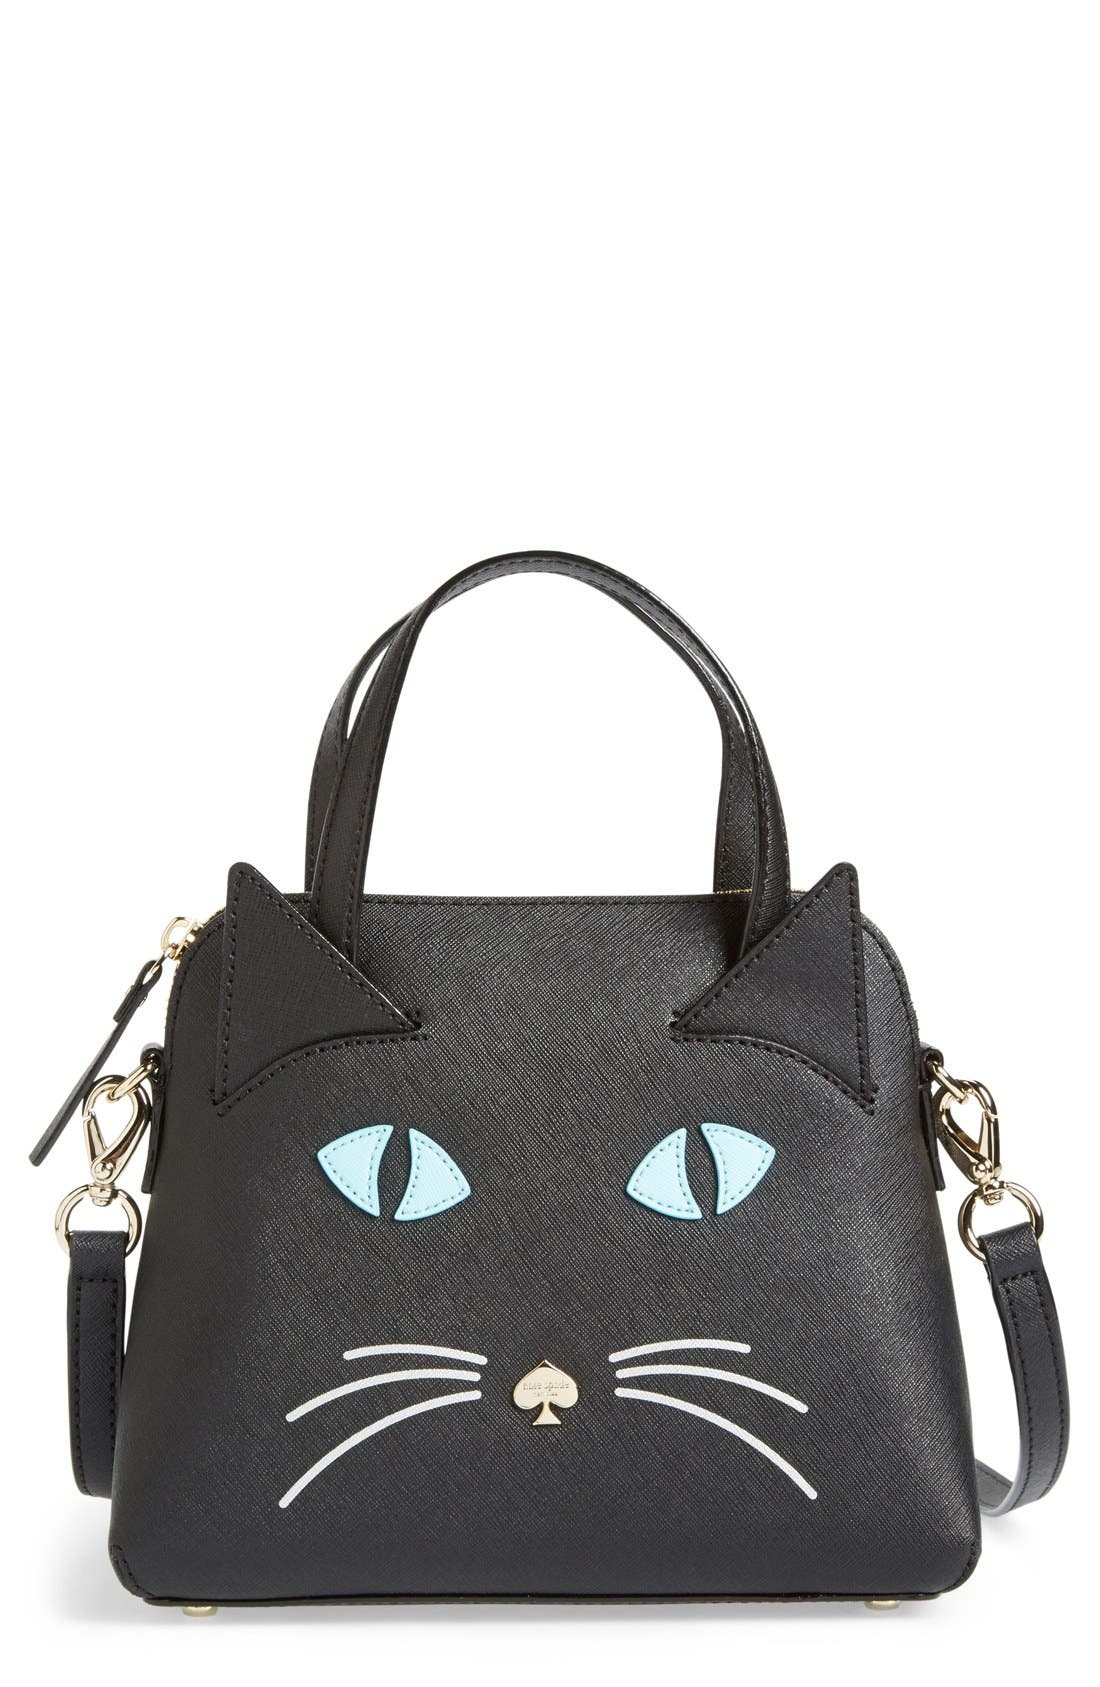 Main Image - kate spade new york 'cat's meow - small maise' satchel